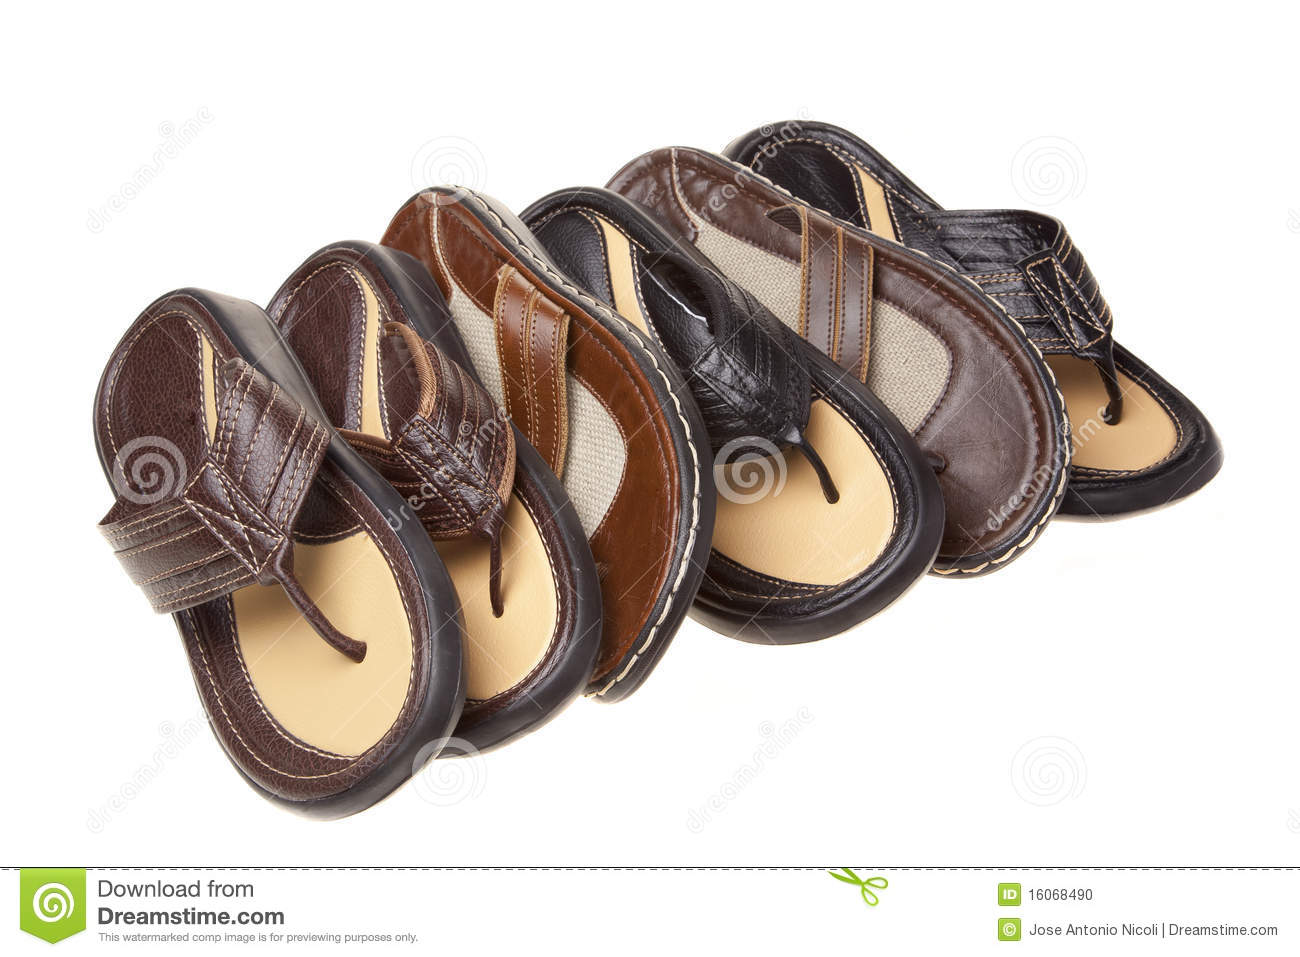 ab8a97be42386 Sandals in a row stock photo. Image of clothing